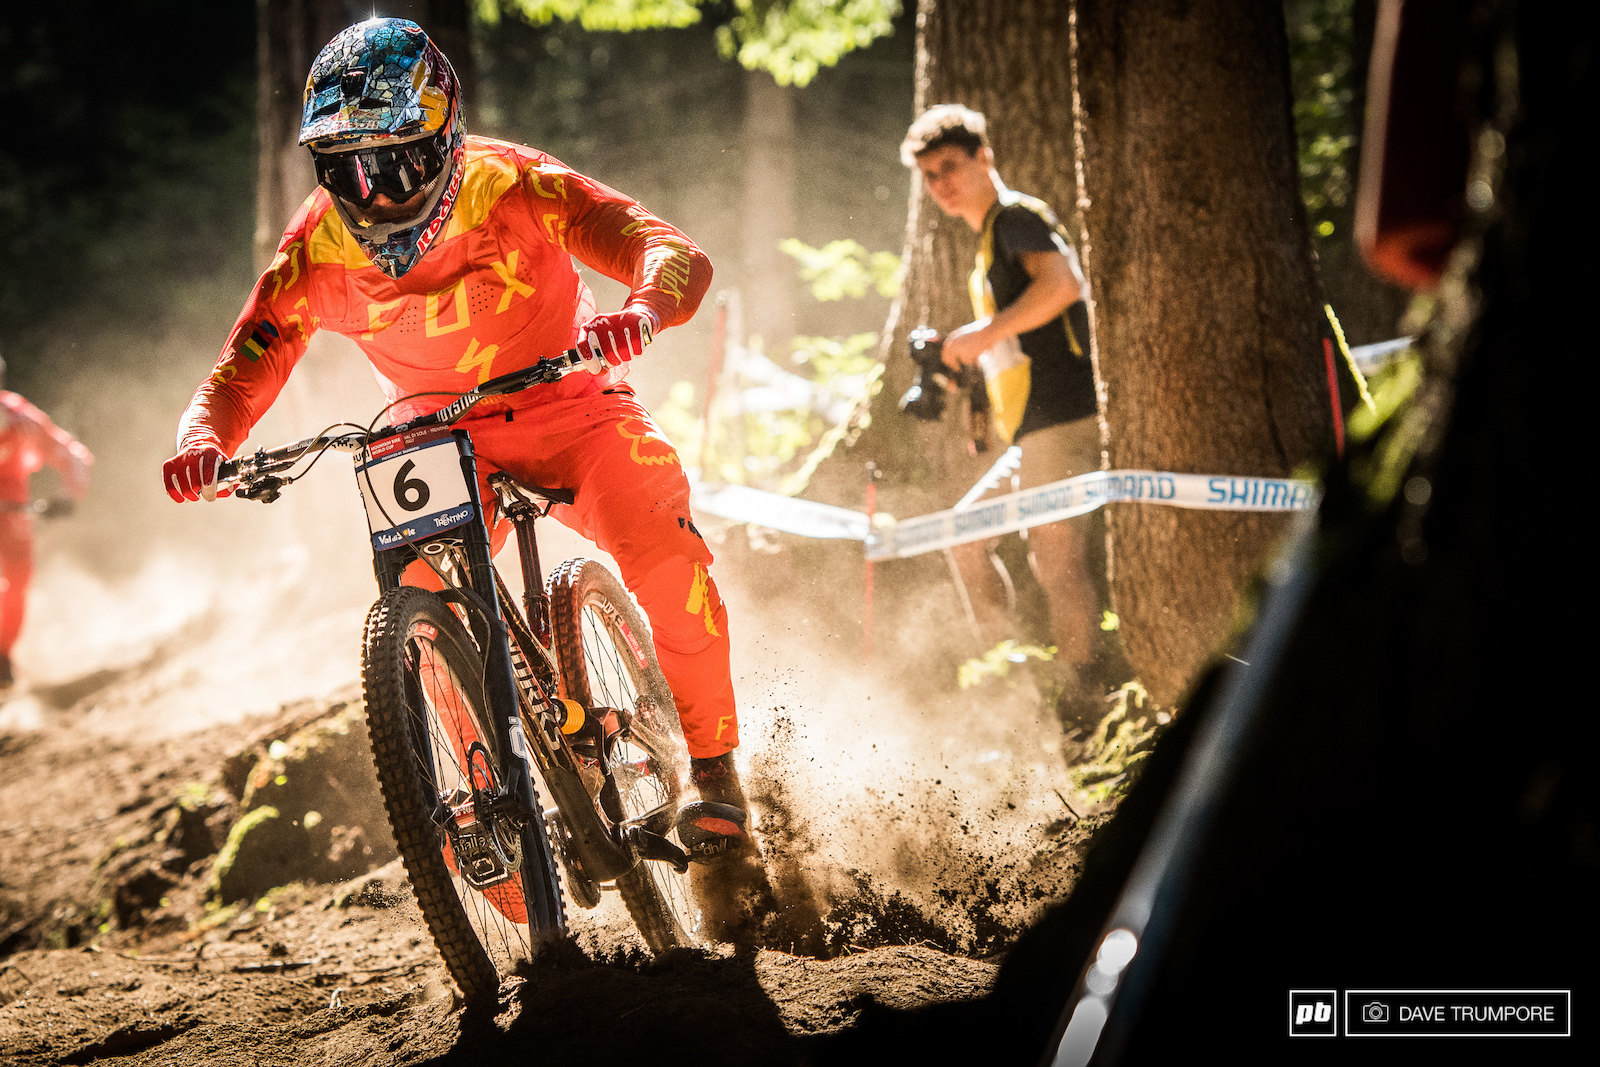 Loic needs to push hard if he wants to get into the top 5 in the overall on Saturday.